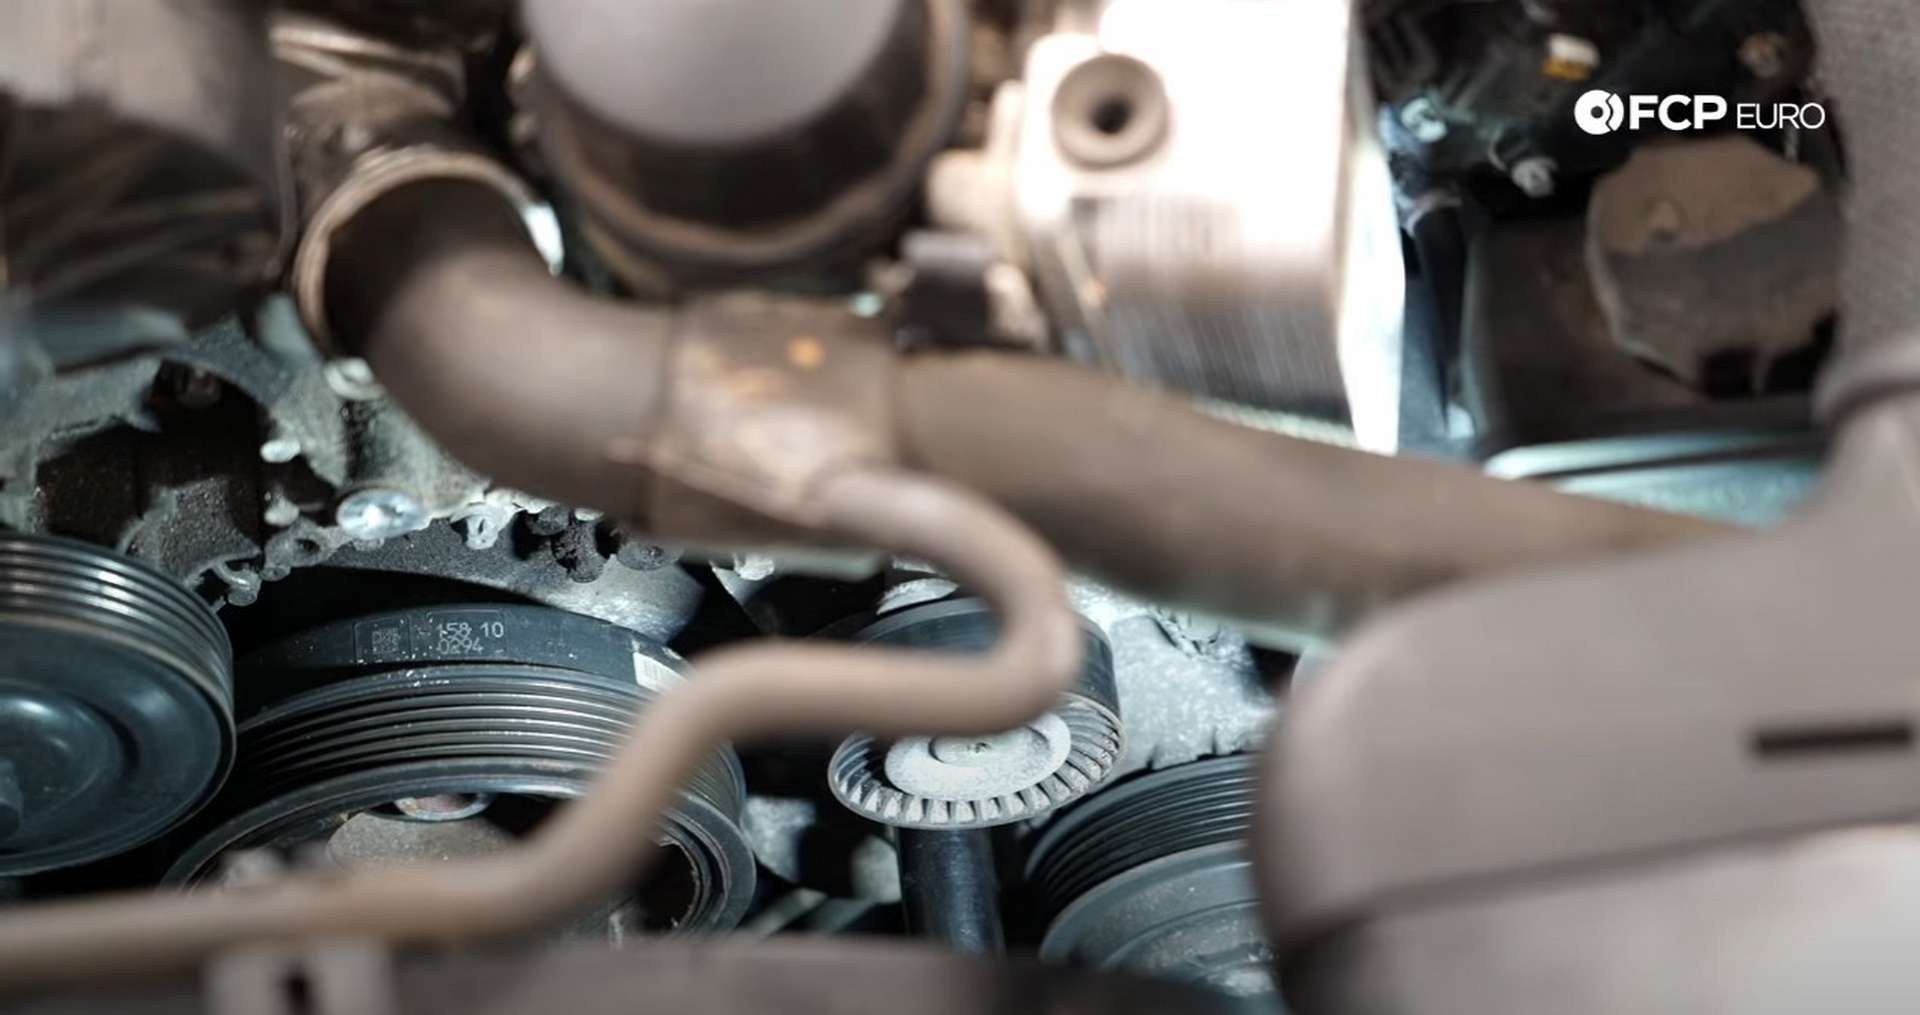 DIY Mercedes W212/204 Alternator and Drive Belt Replacement rotating the tensioner